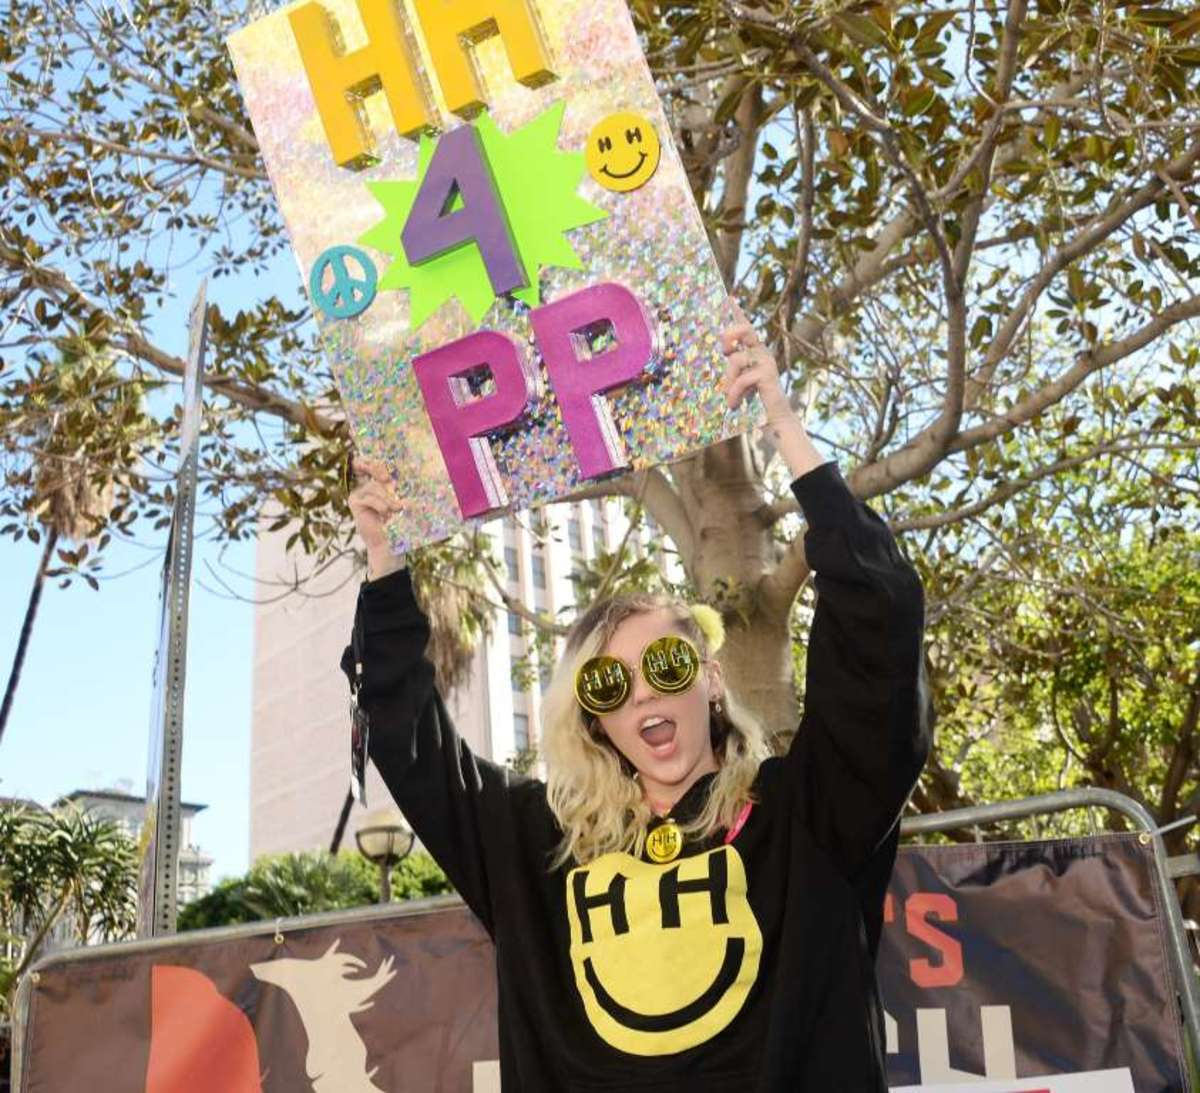 Miley at the women's march in LA 1/21/17